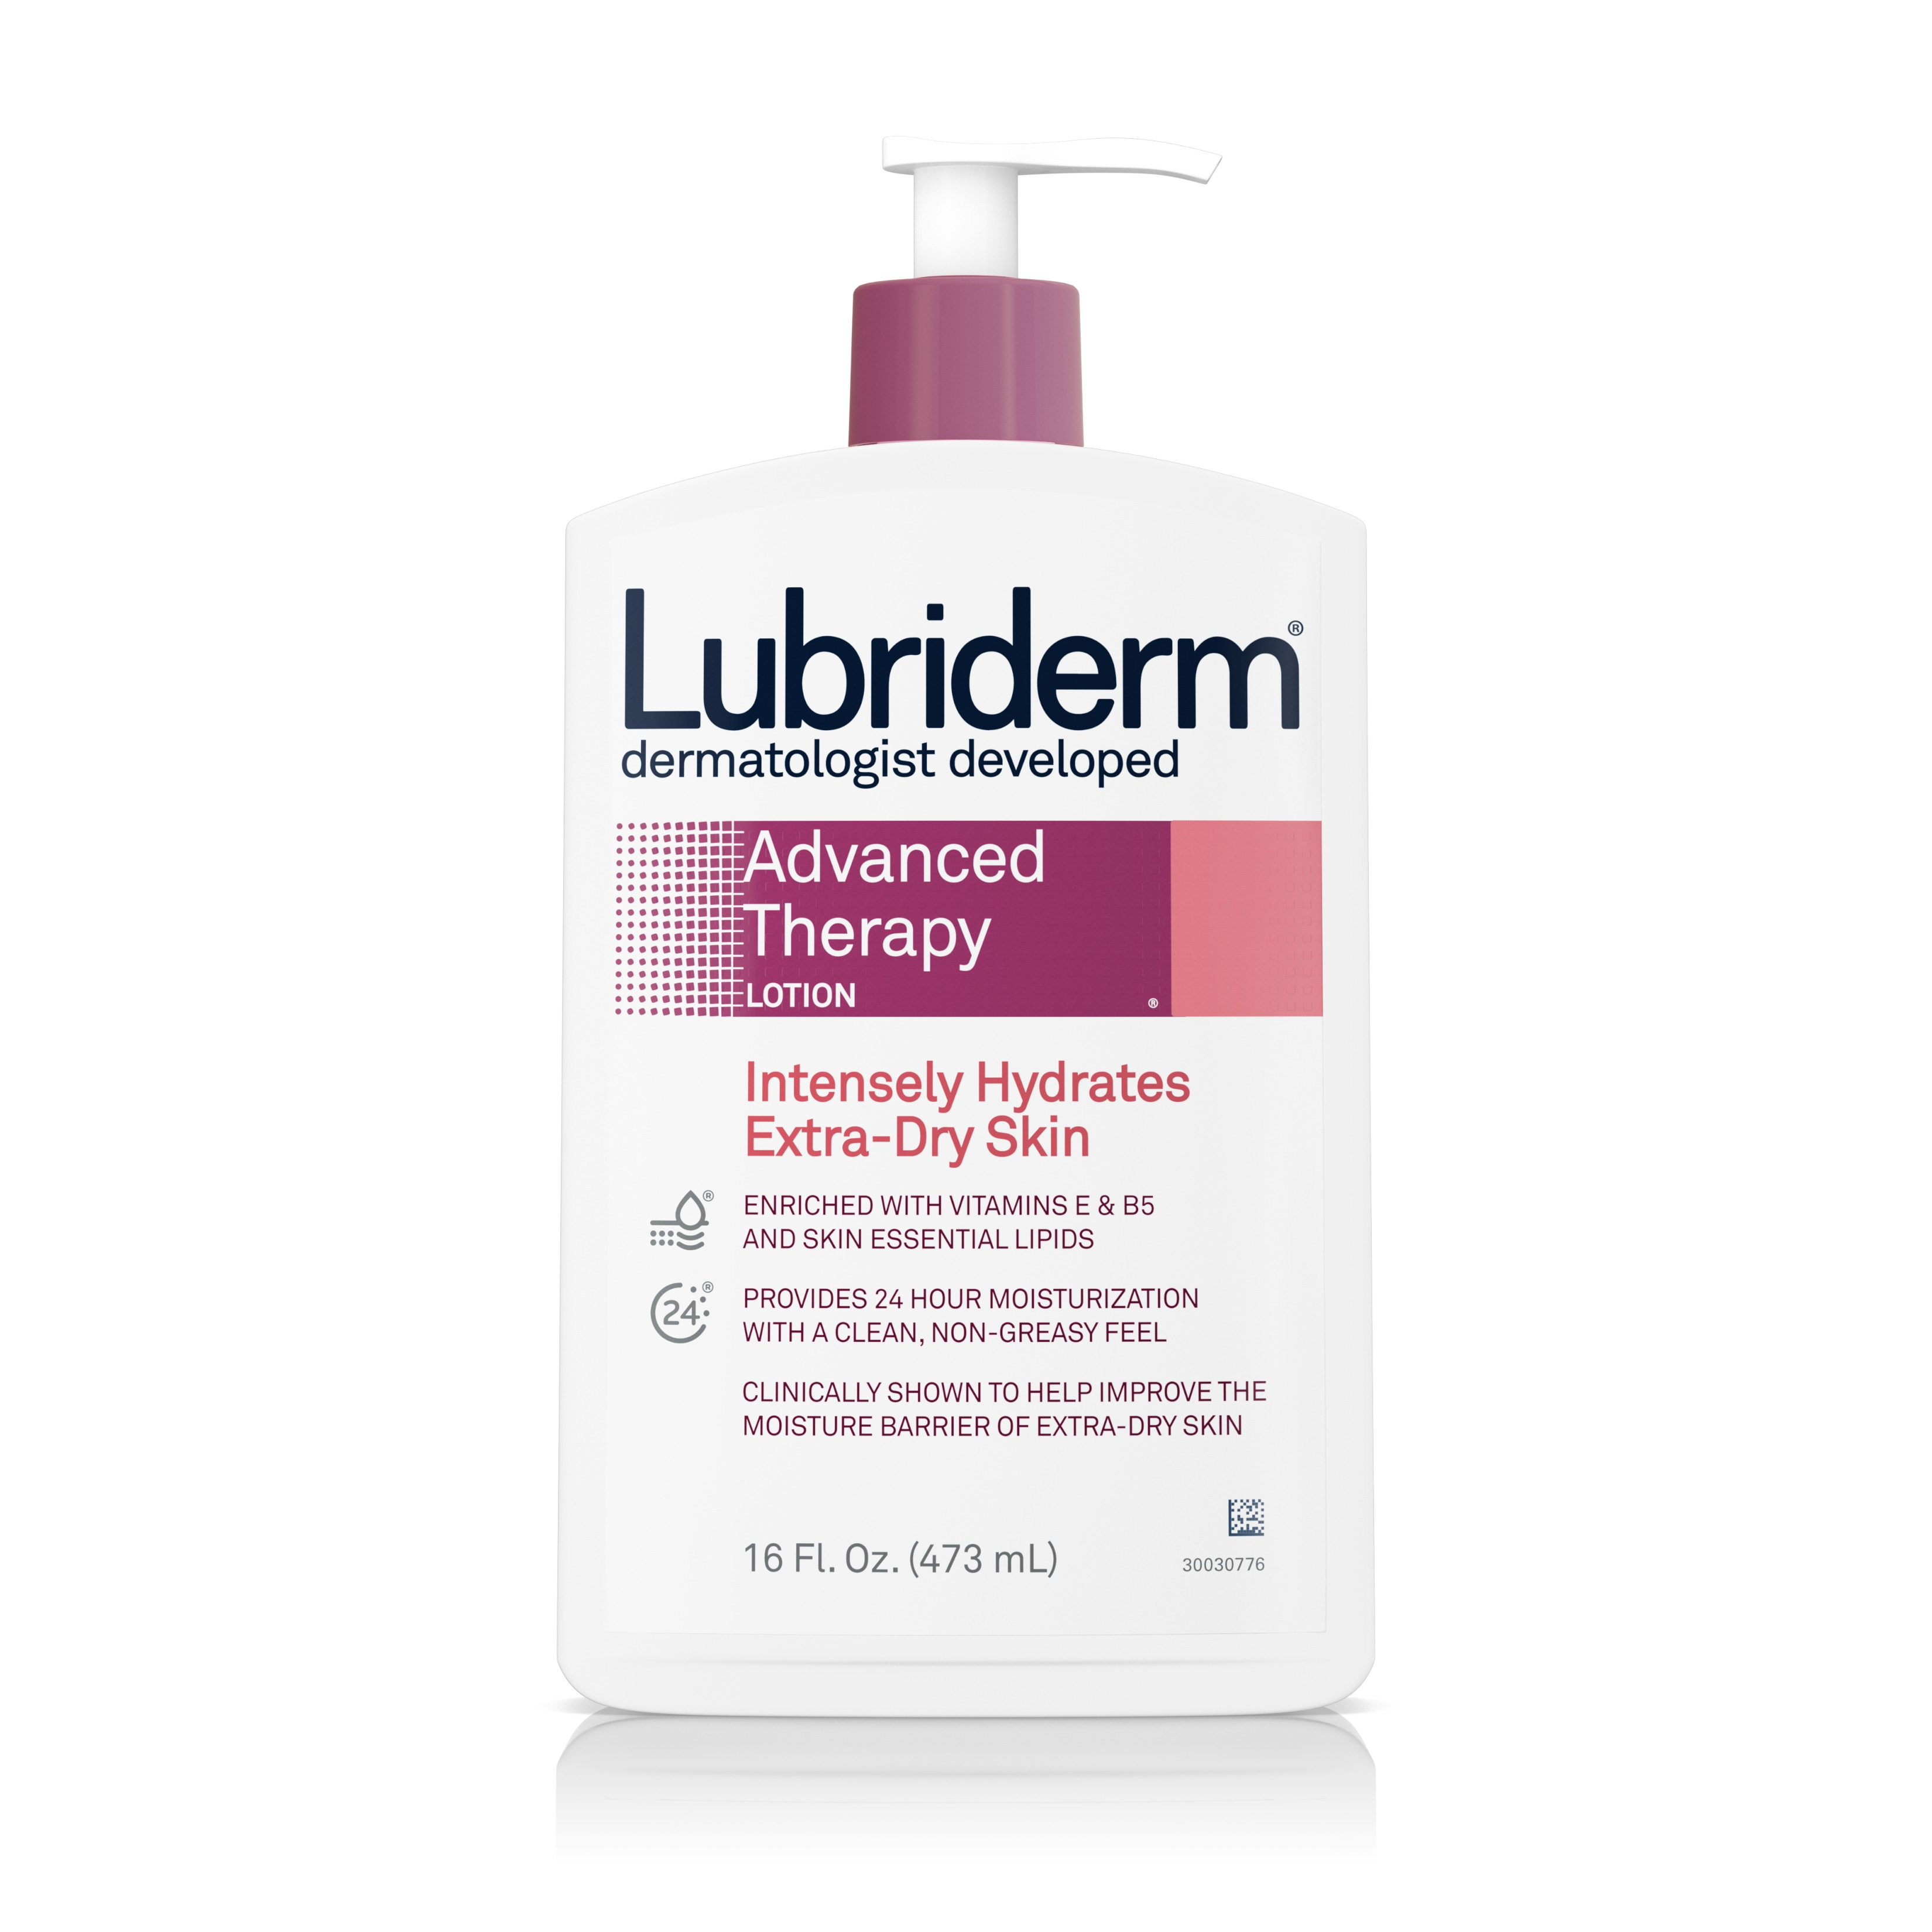 Lubriderm Advanced Therapy Lotion with Vitamin E and B5, 16 fl. oz